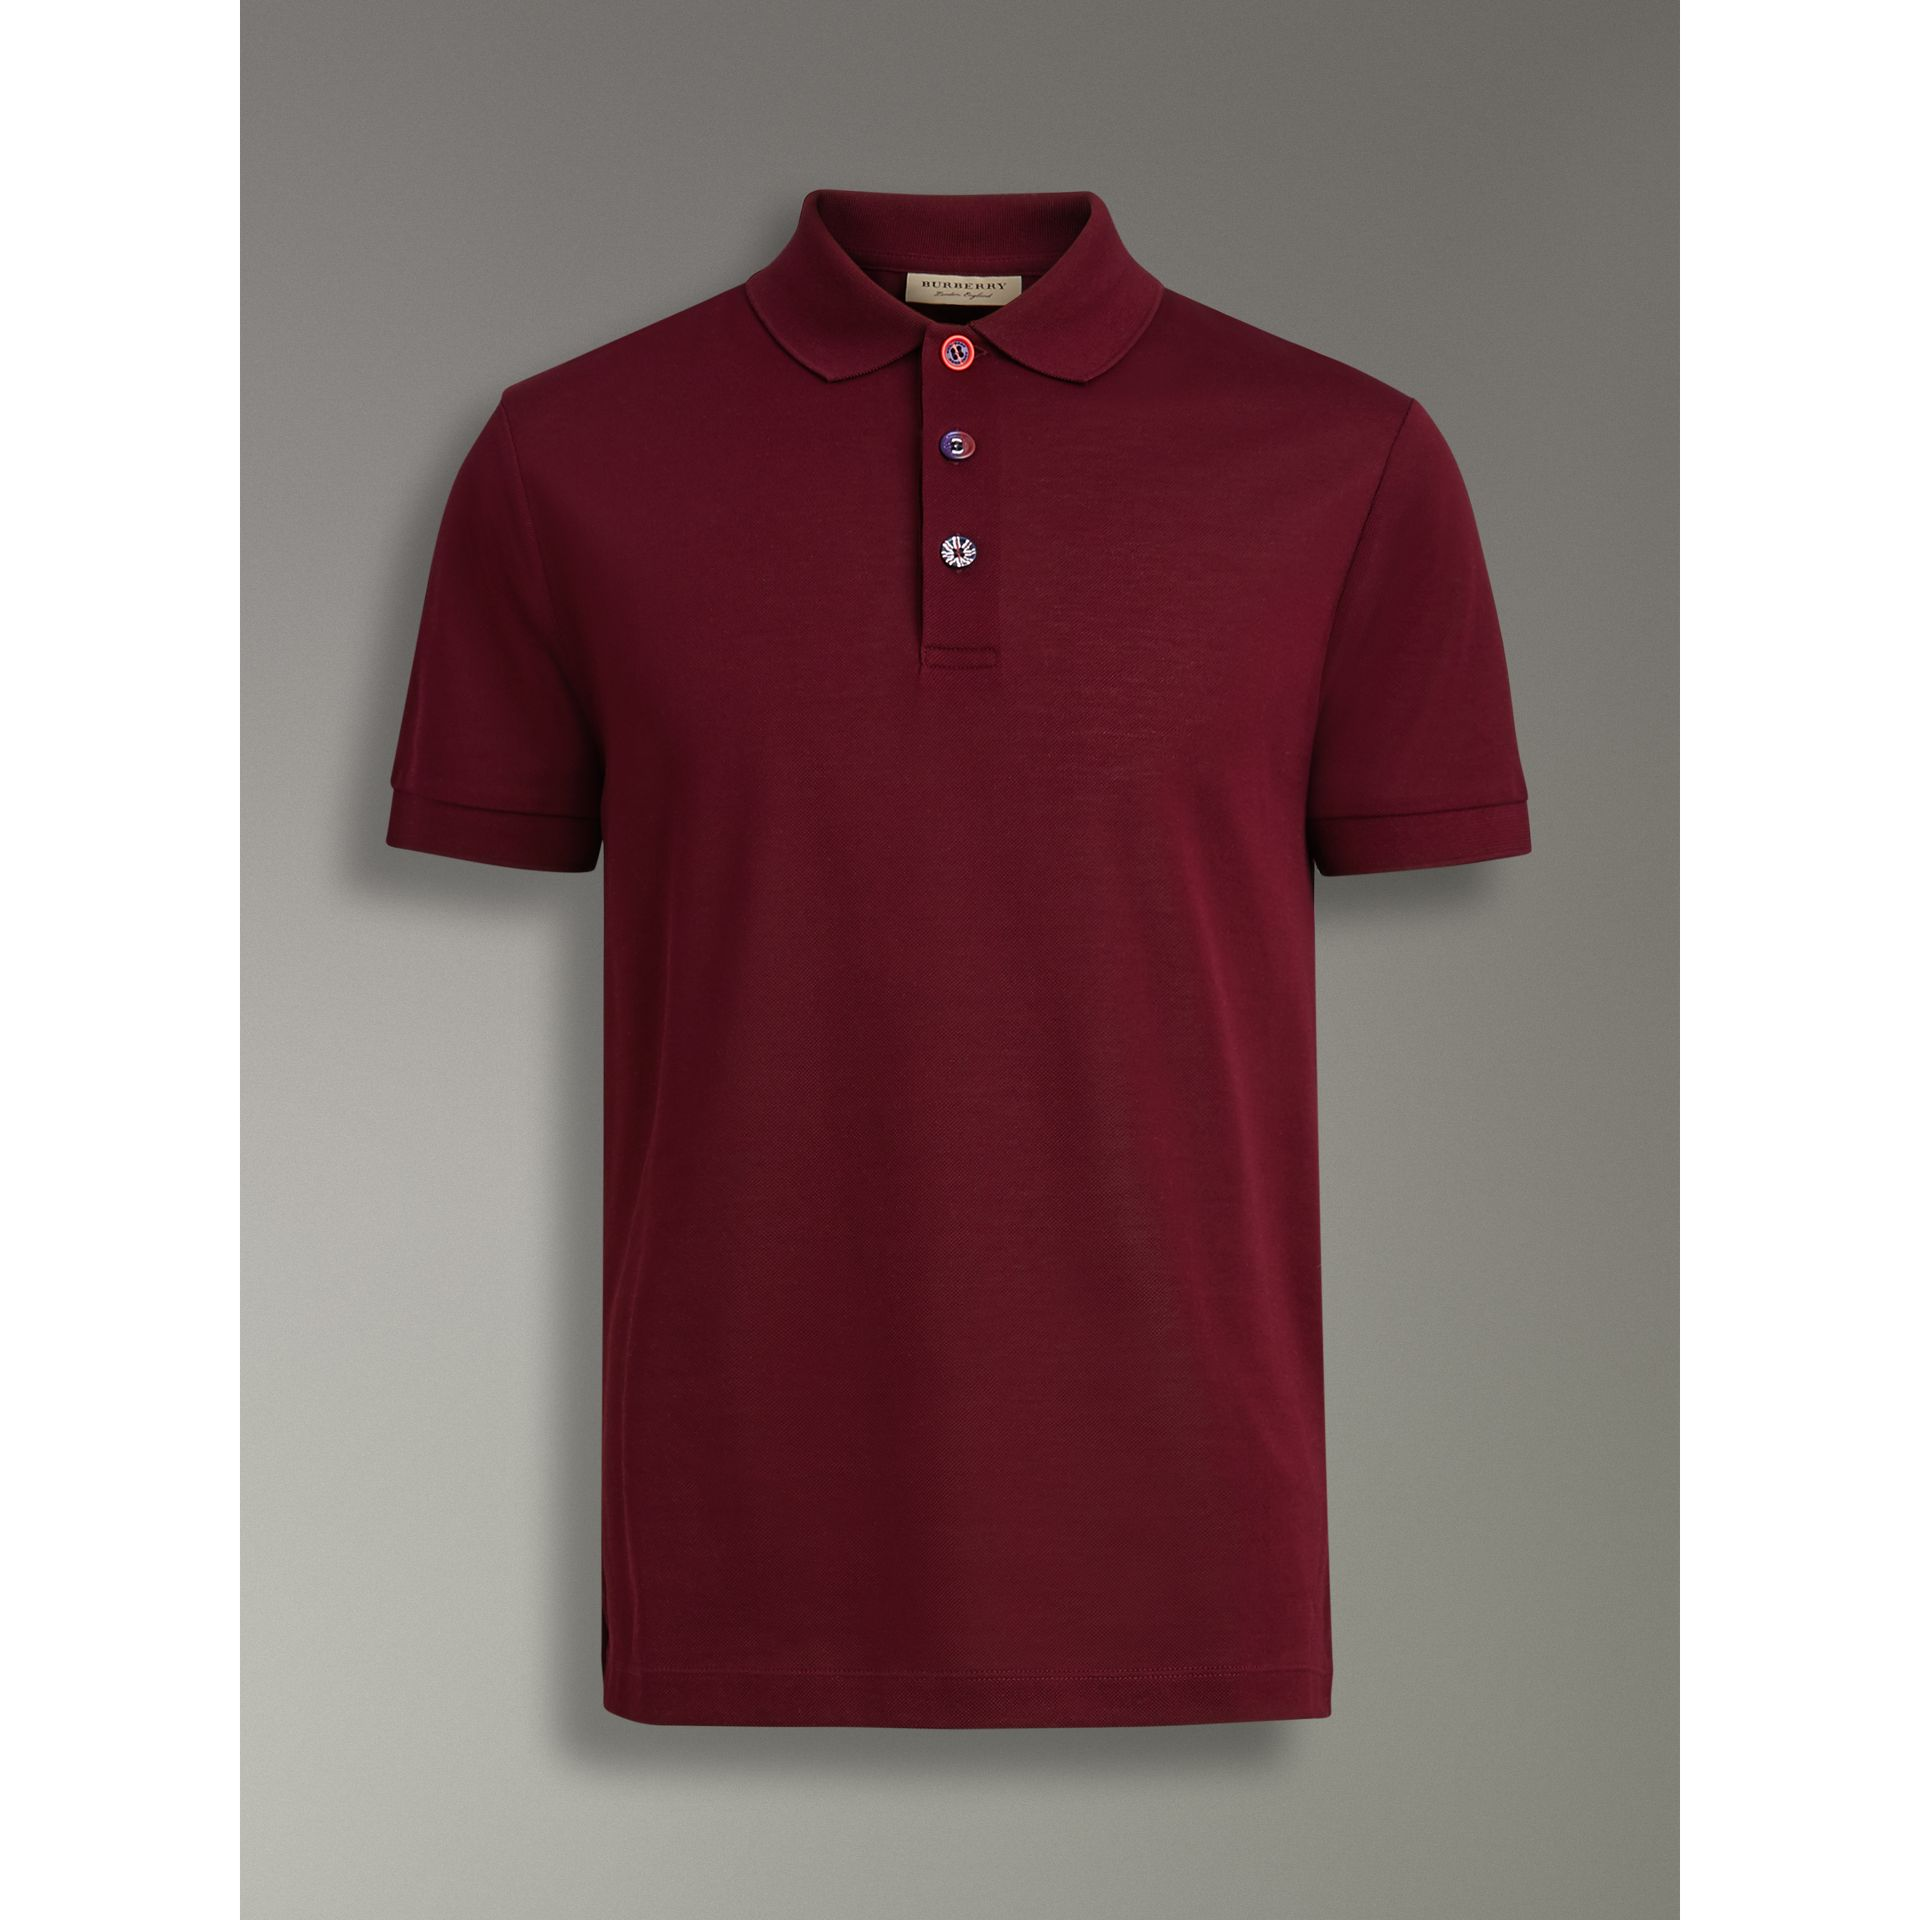 Painted Button Cotton Piqué Polo Shirt in Burgundy Red - Men | Burberry Singapore - gallery image 3